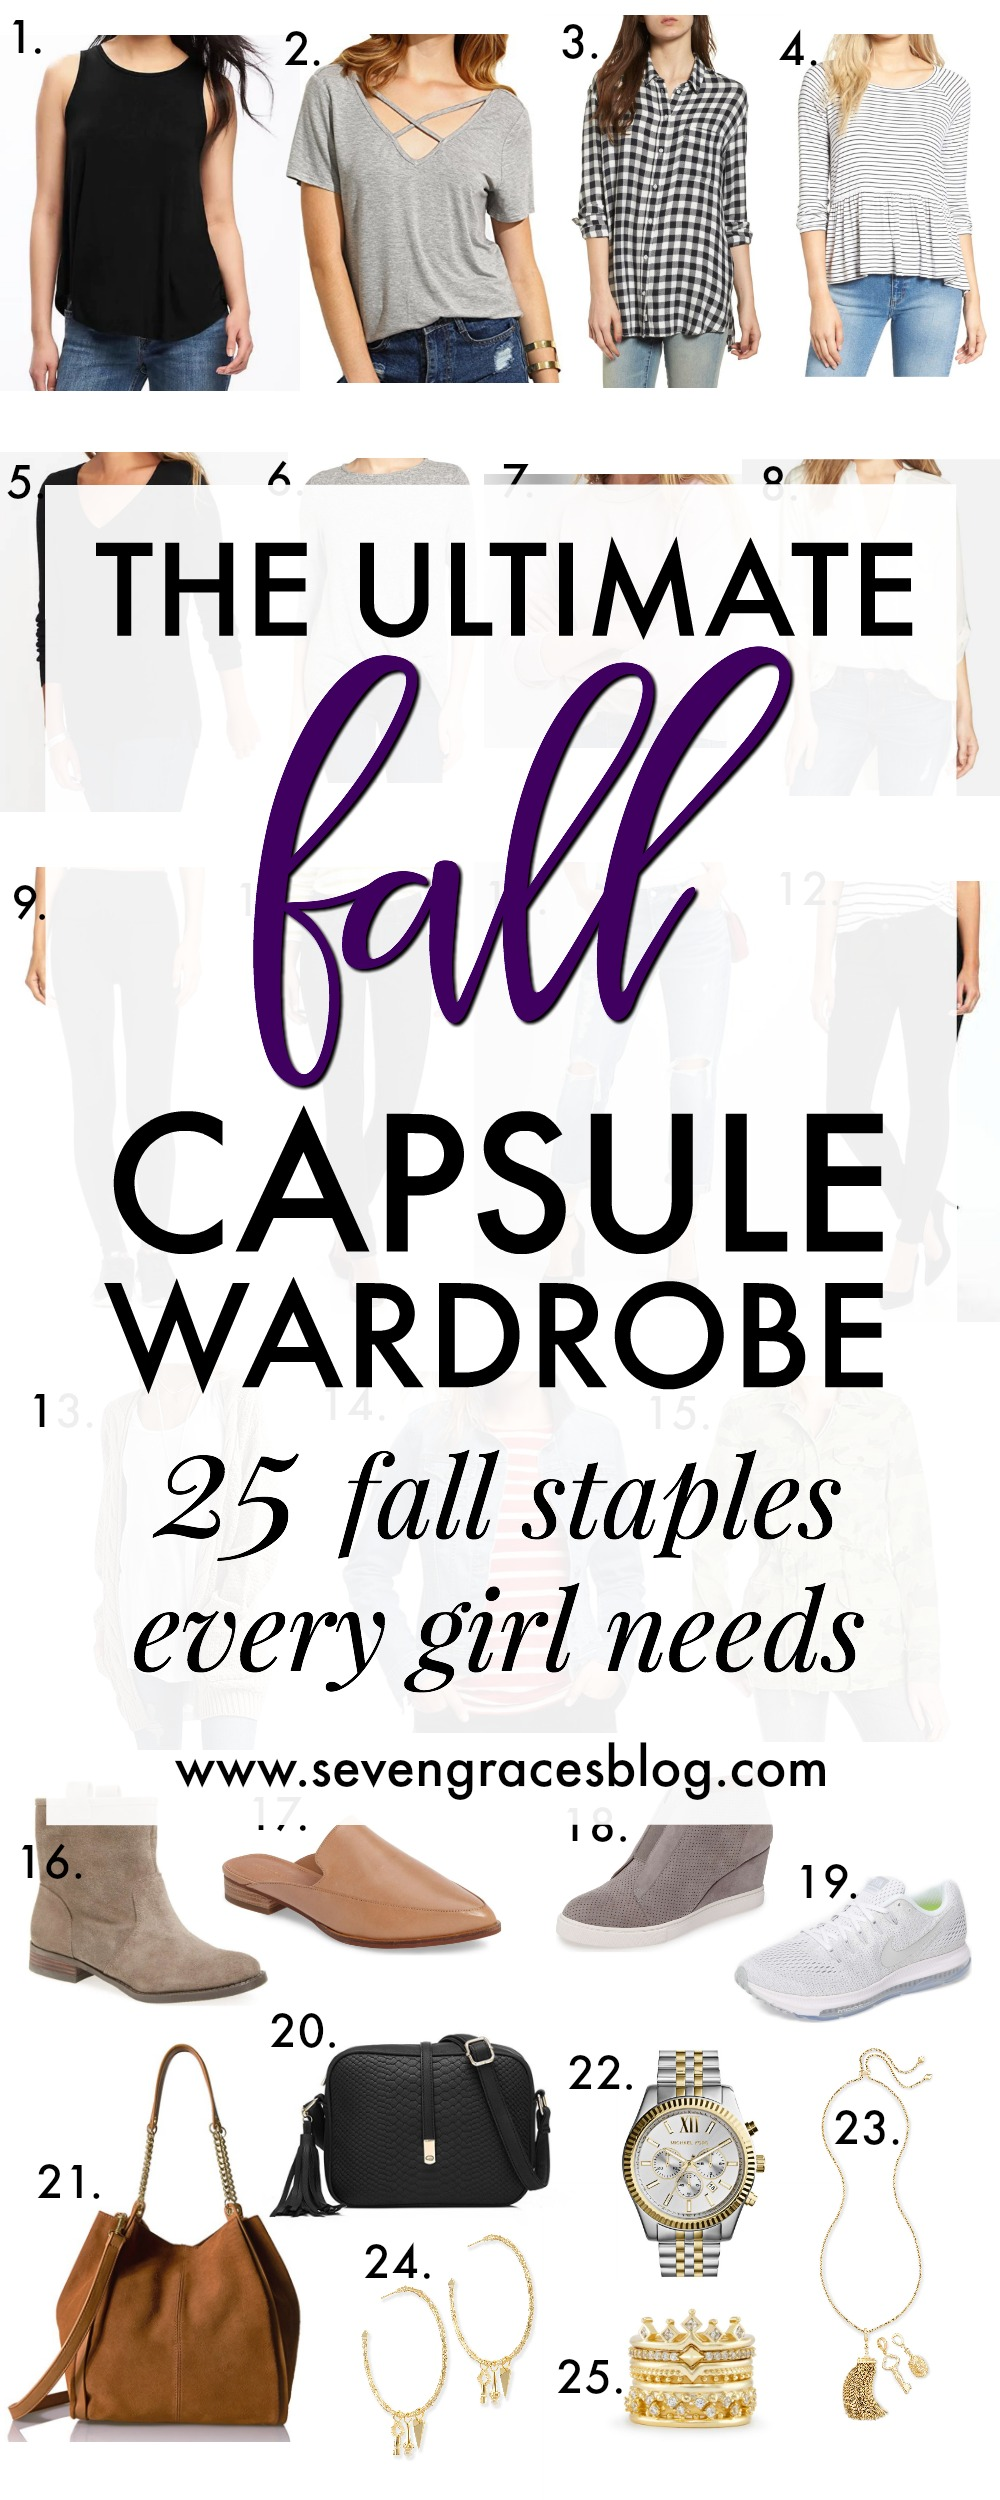 The ultimate fall capsule wardrobe for the busy mom who wants to stay stylish but comfy. Endless outfit combos with only 25 pieces! #capsulewardrobe #momcapsulewardrobe #fallcapsulewardrobe